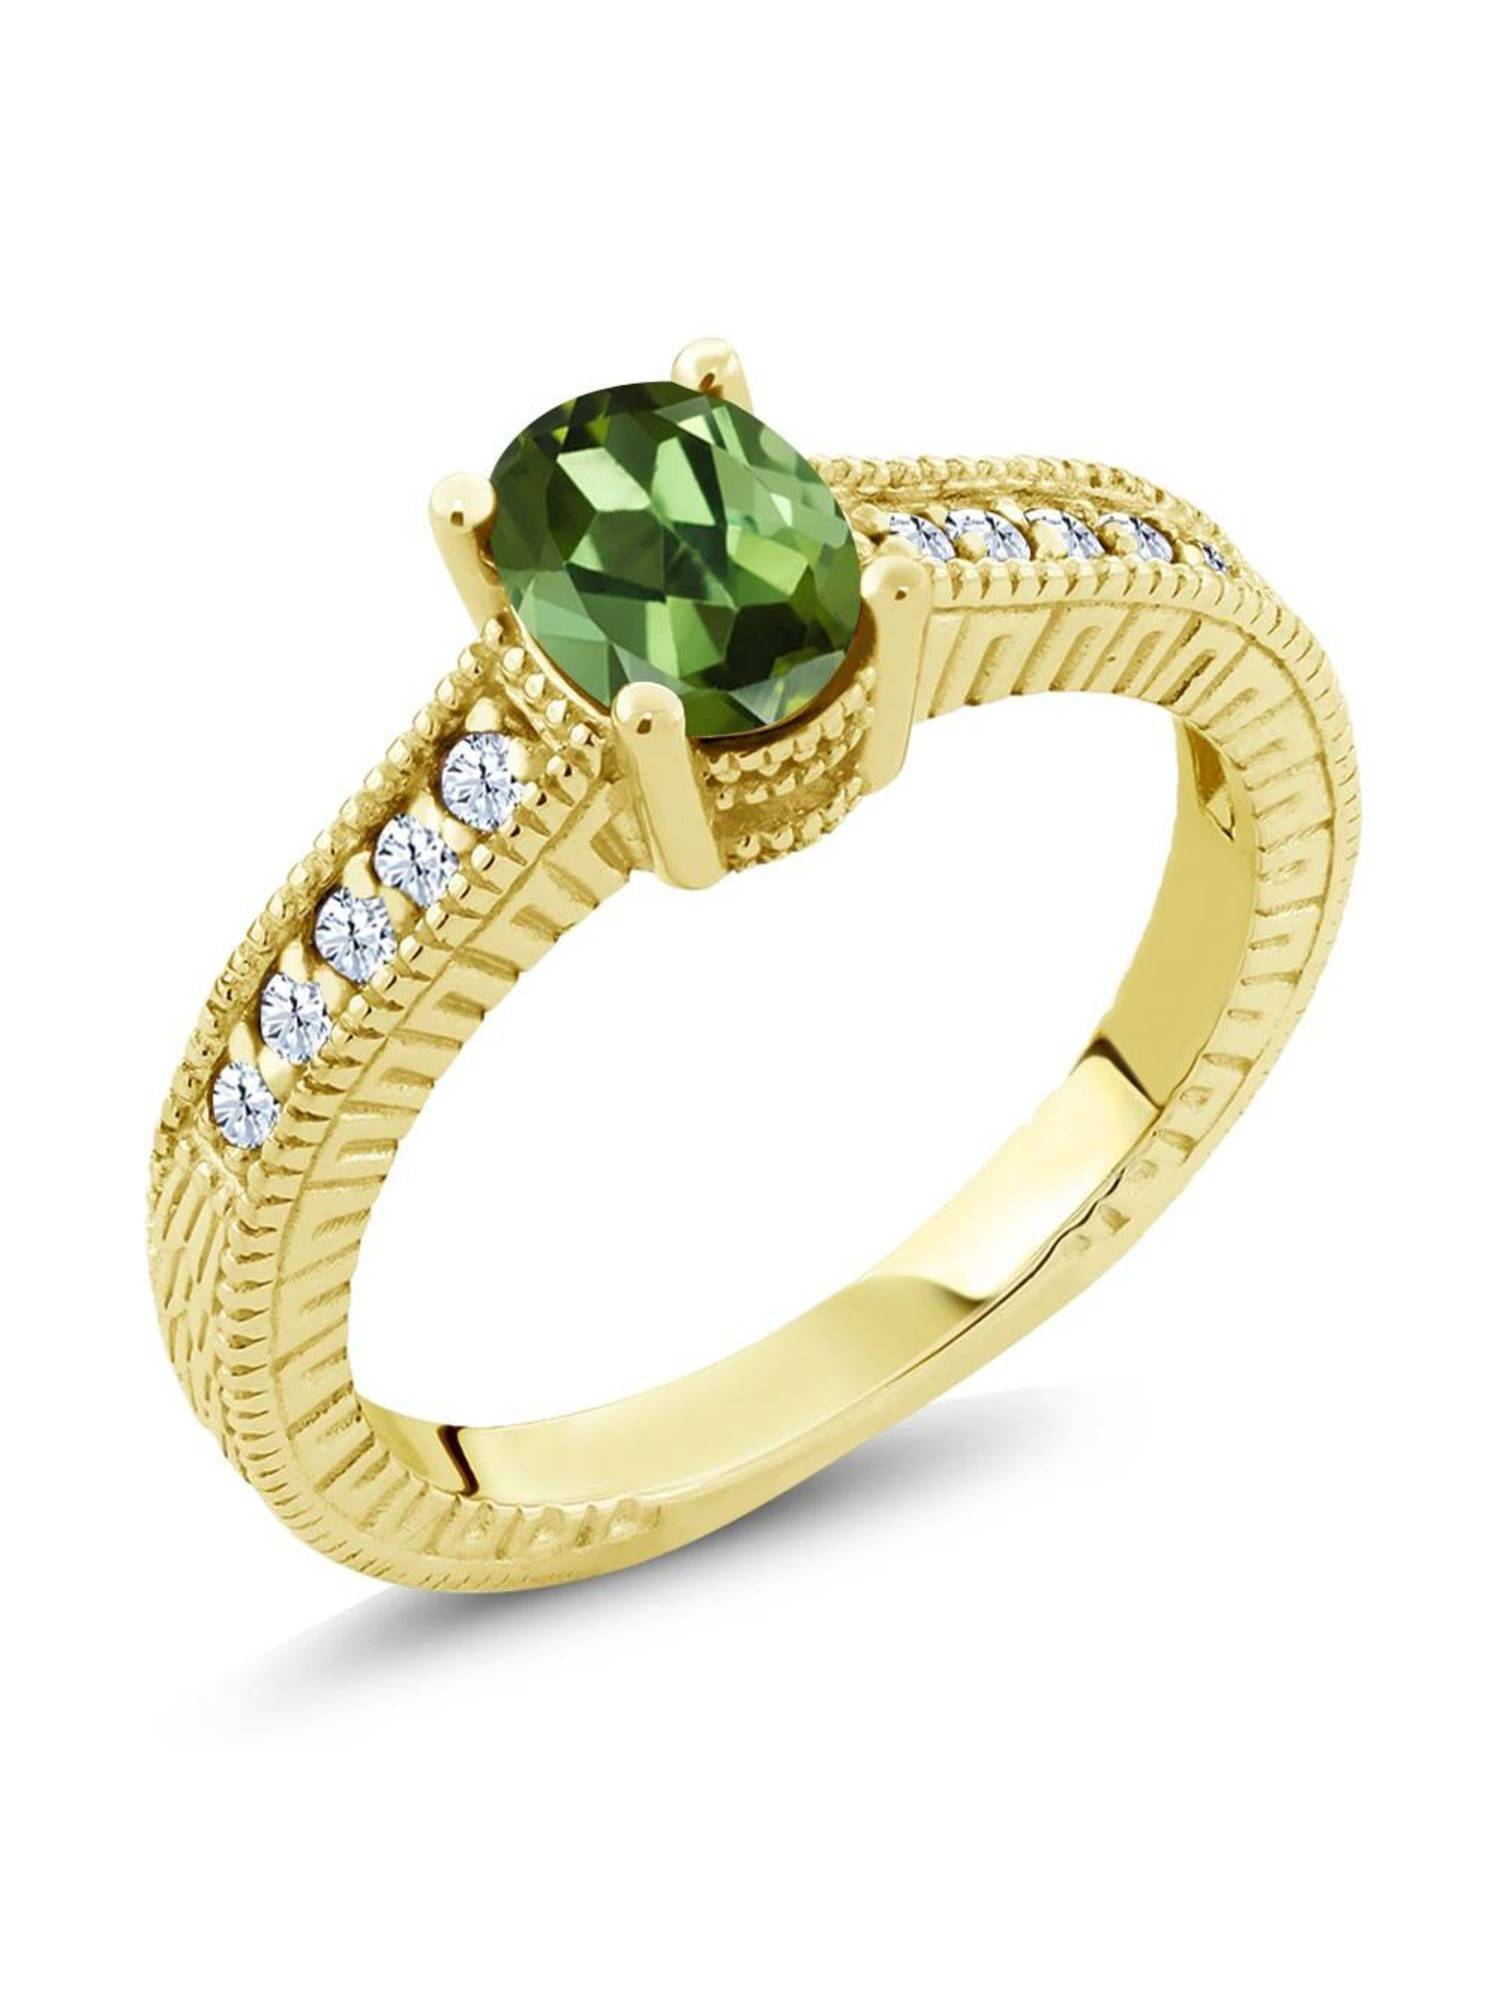 1.25 Ct Oval Green Tourmaline White Topaz 18K Yellow Gold Plated Silver Ring by